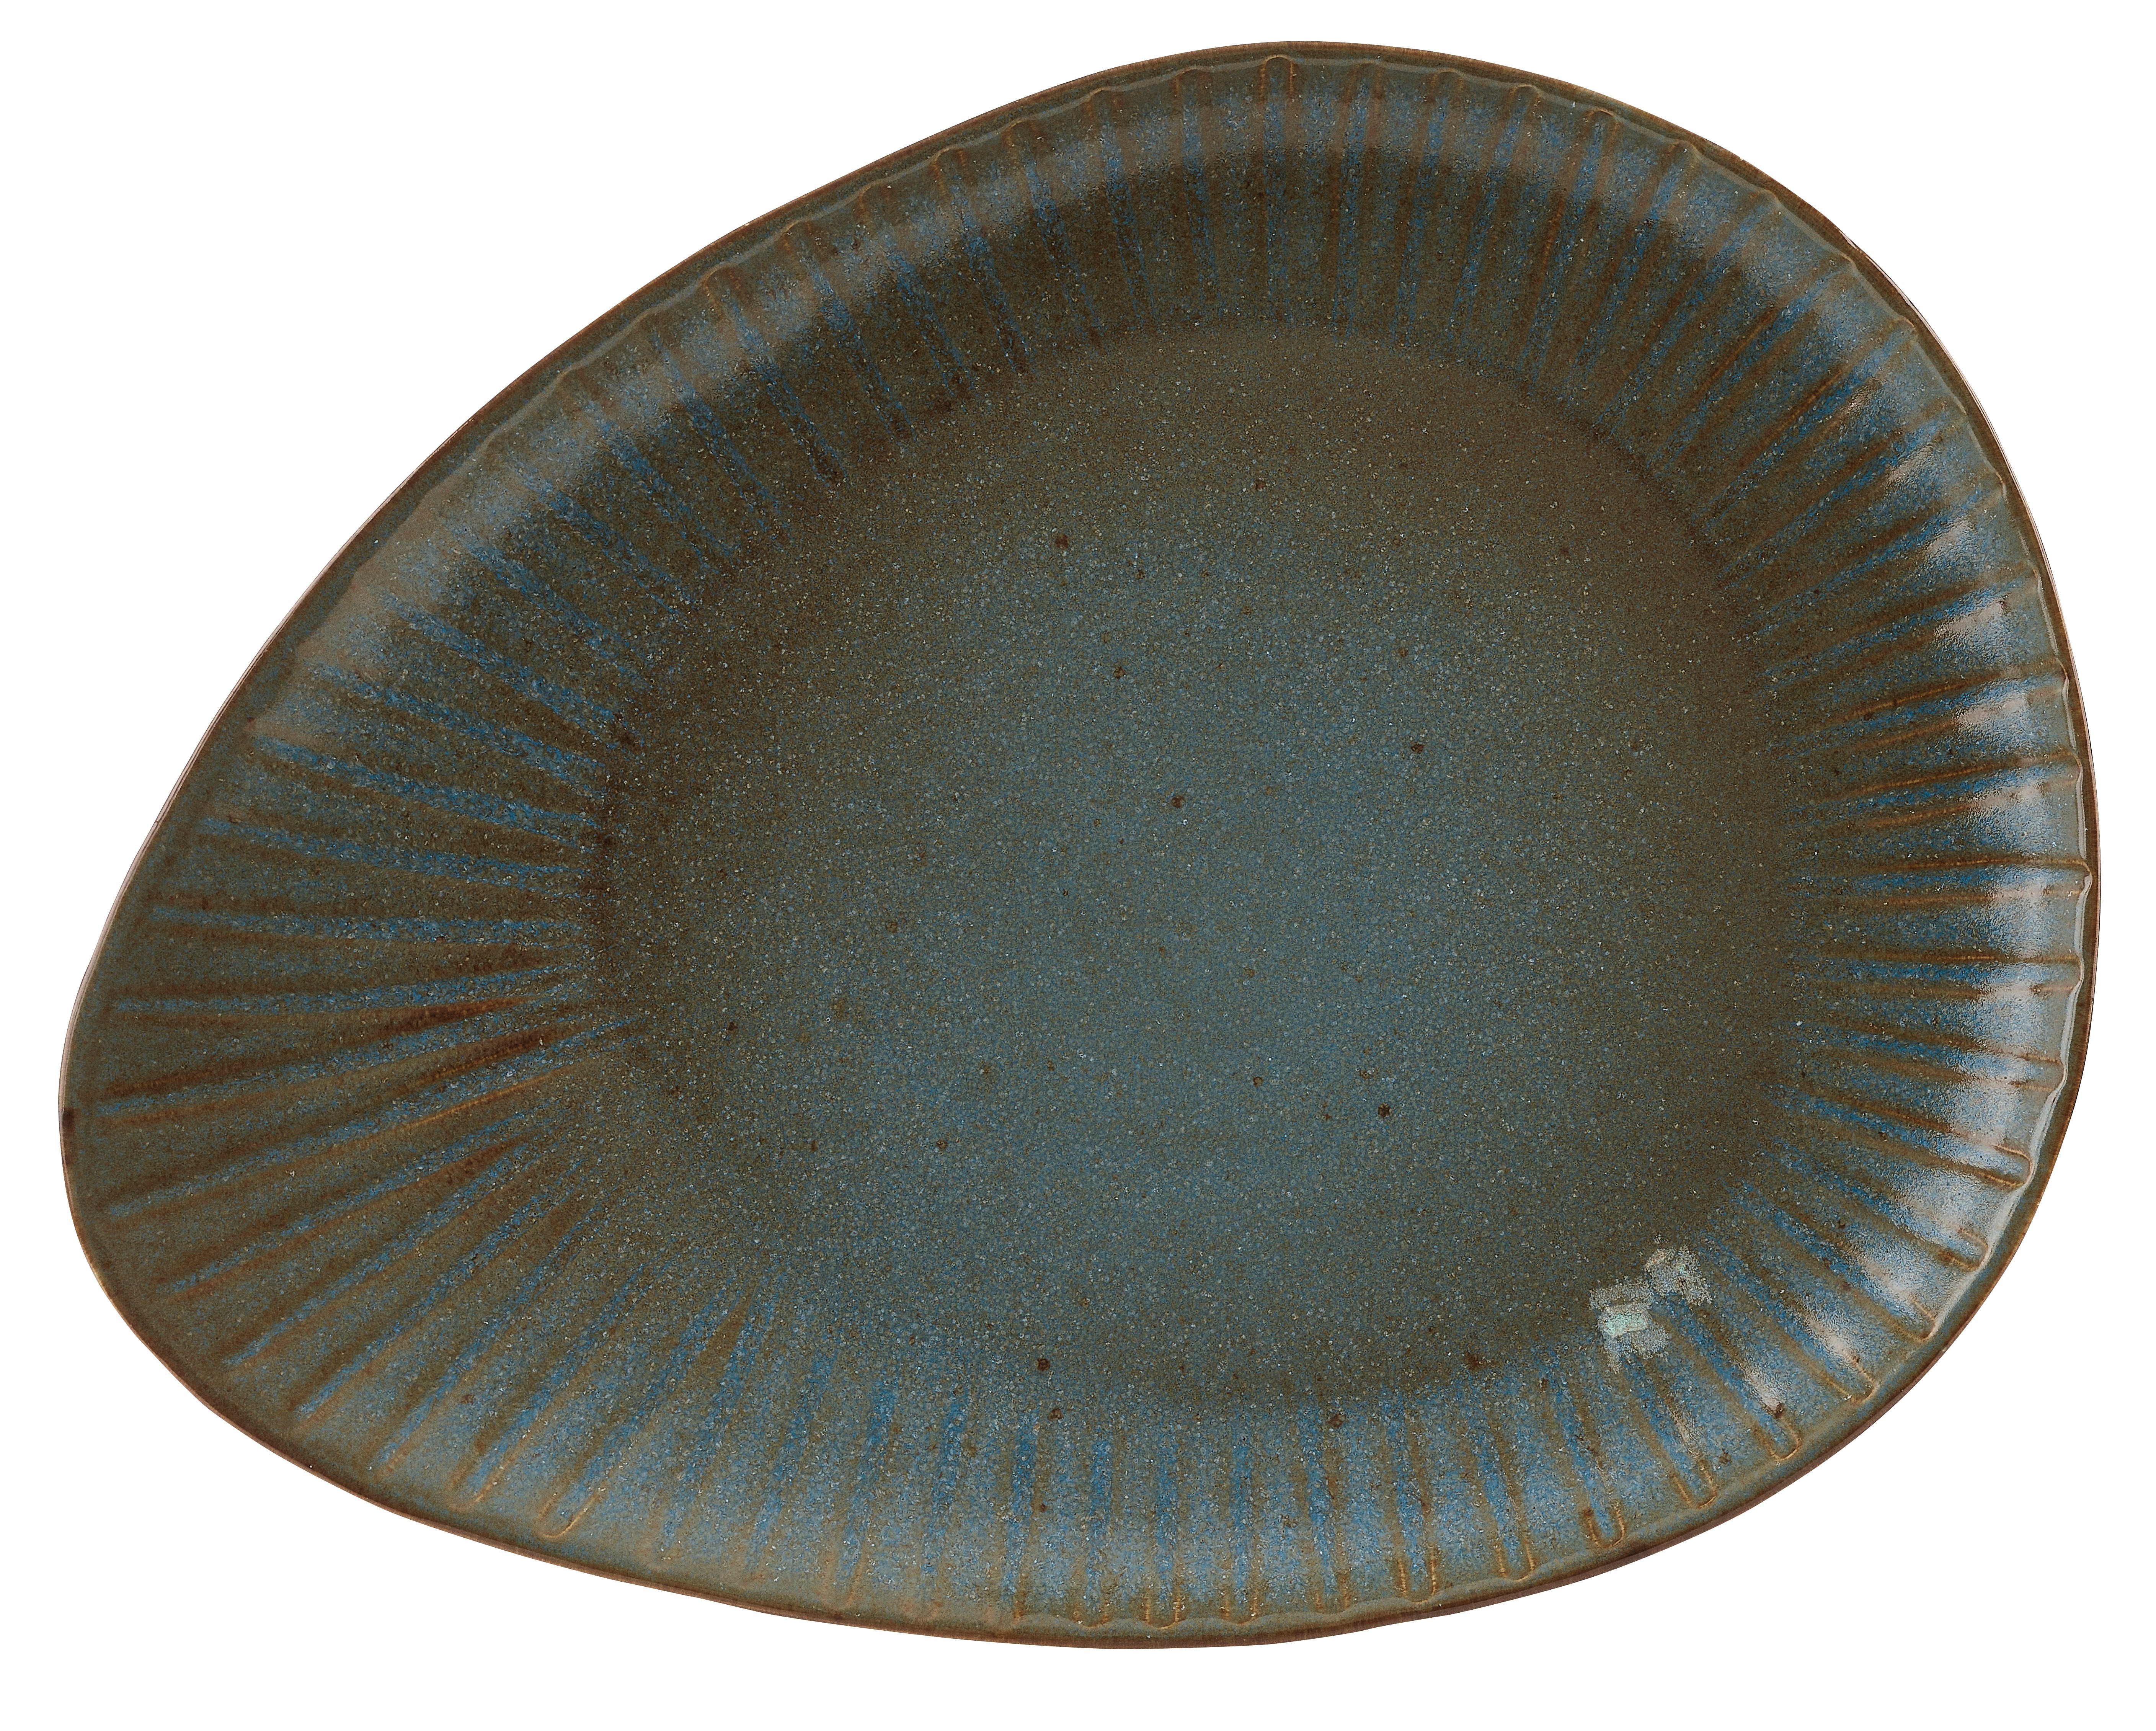 Rustico Impresiones Helecho oval 34cm Plate